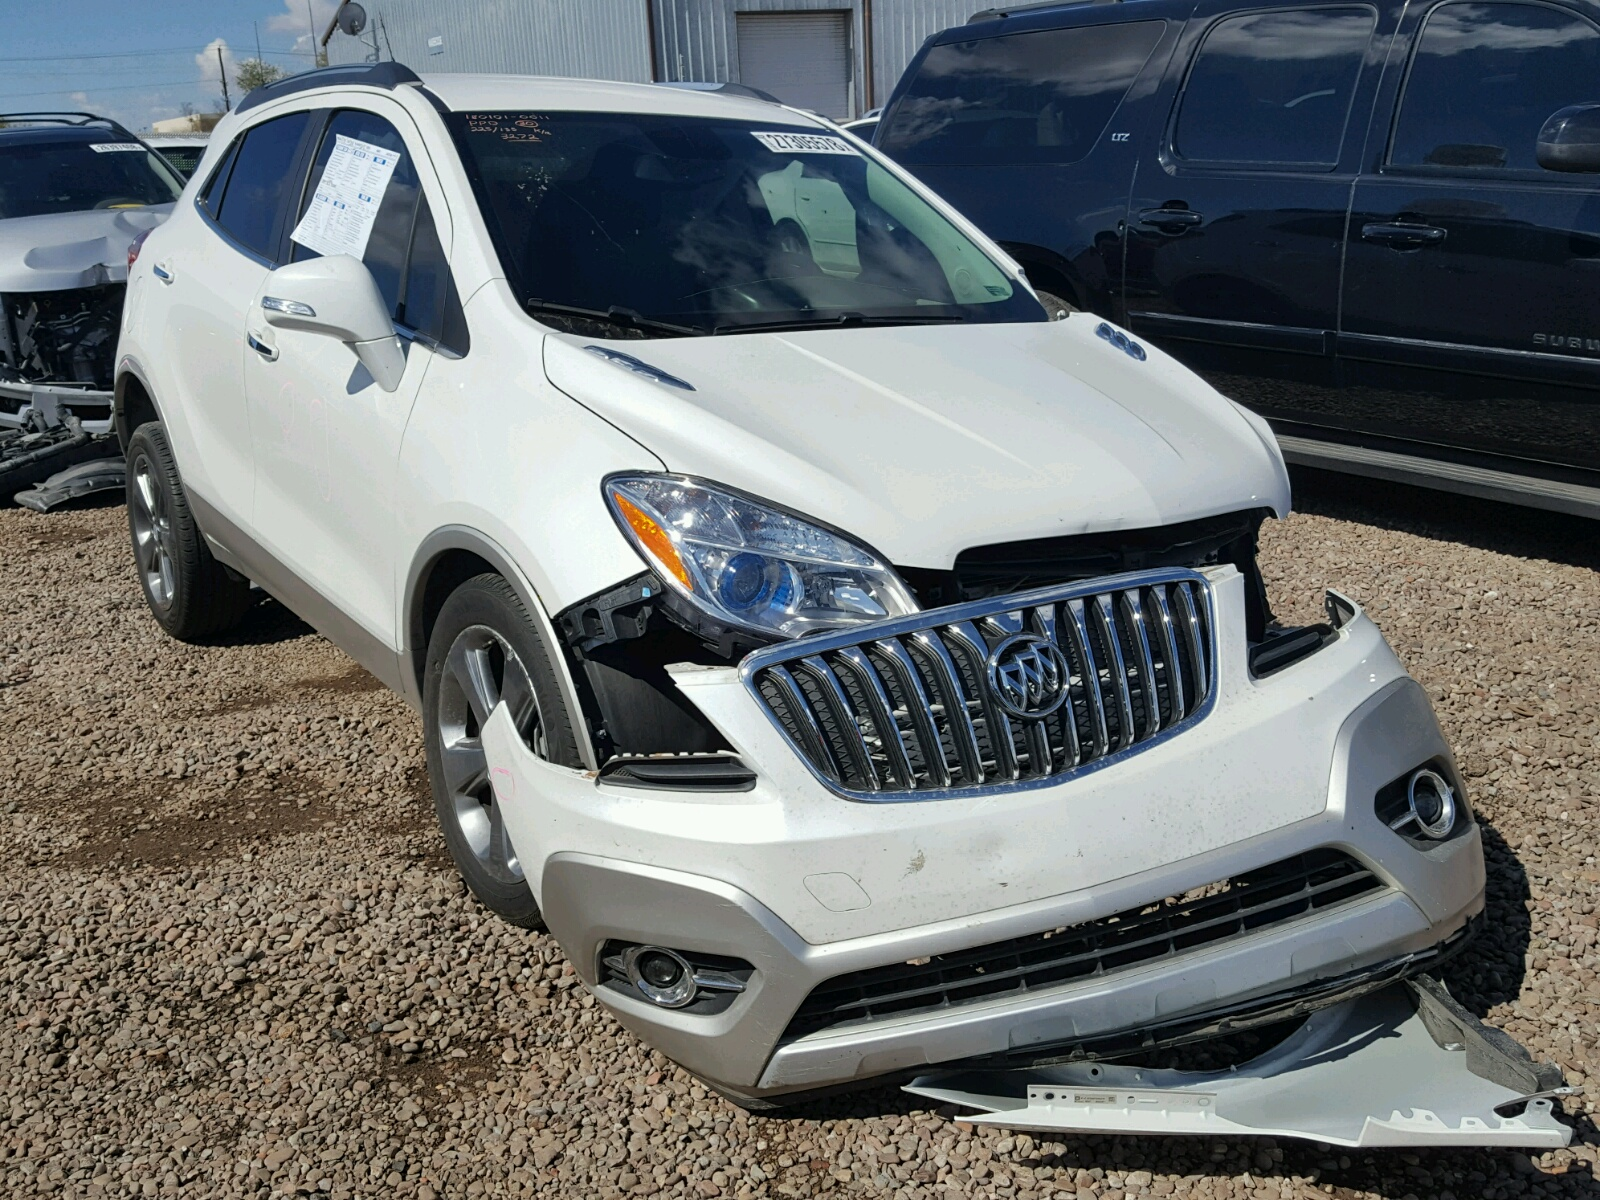 carfinder sale south for auto chicago il en lot salvage view on online blue copart in auctions encore buick certificate right